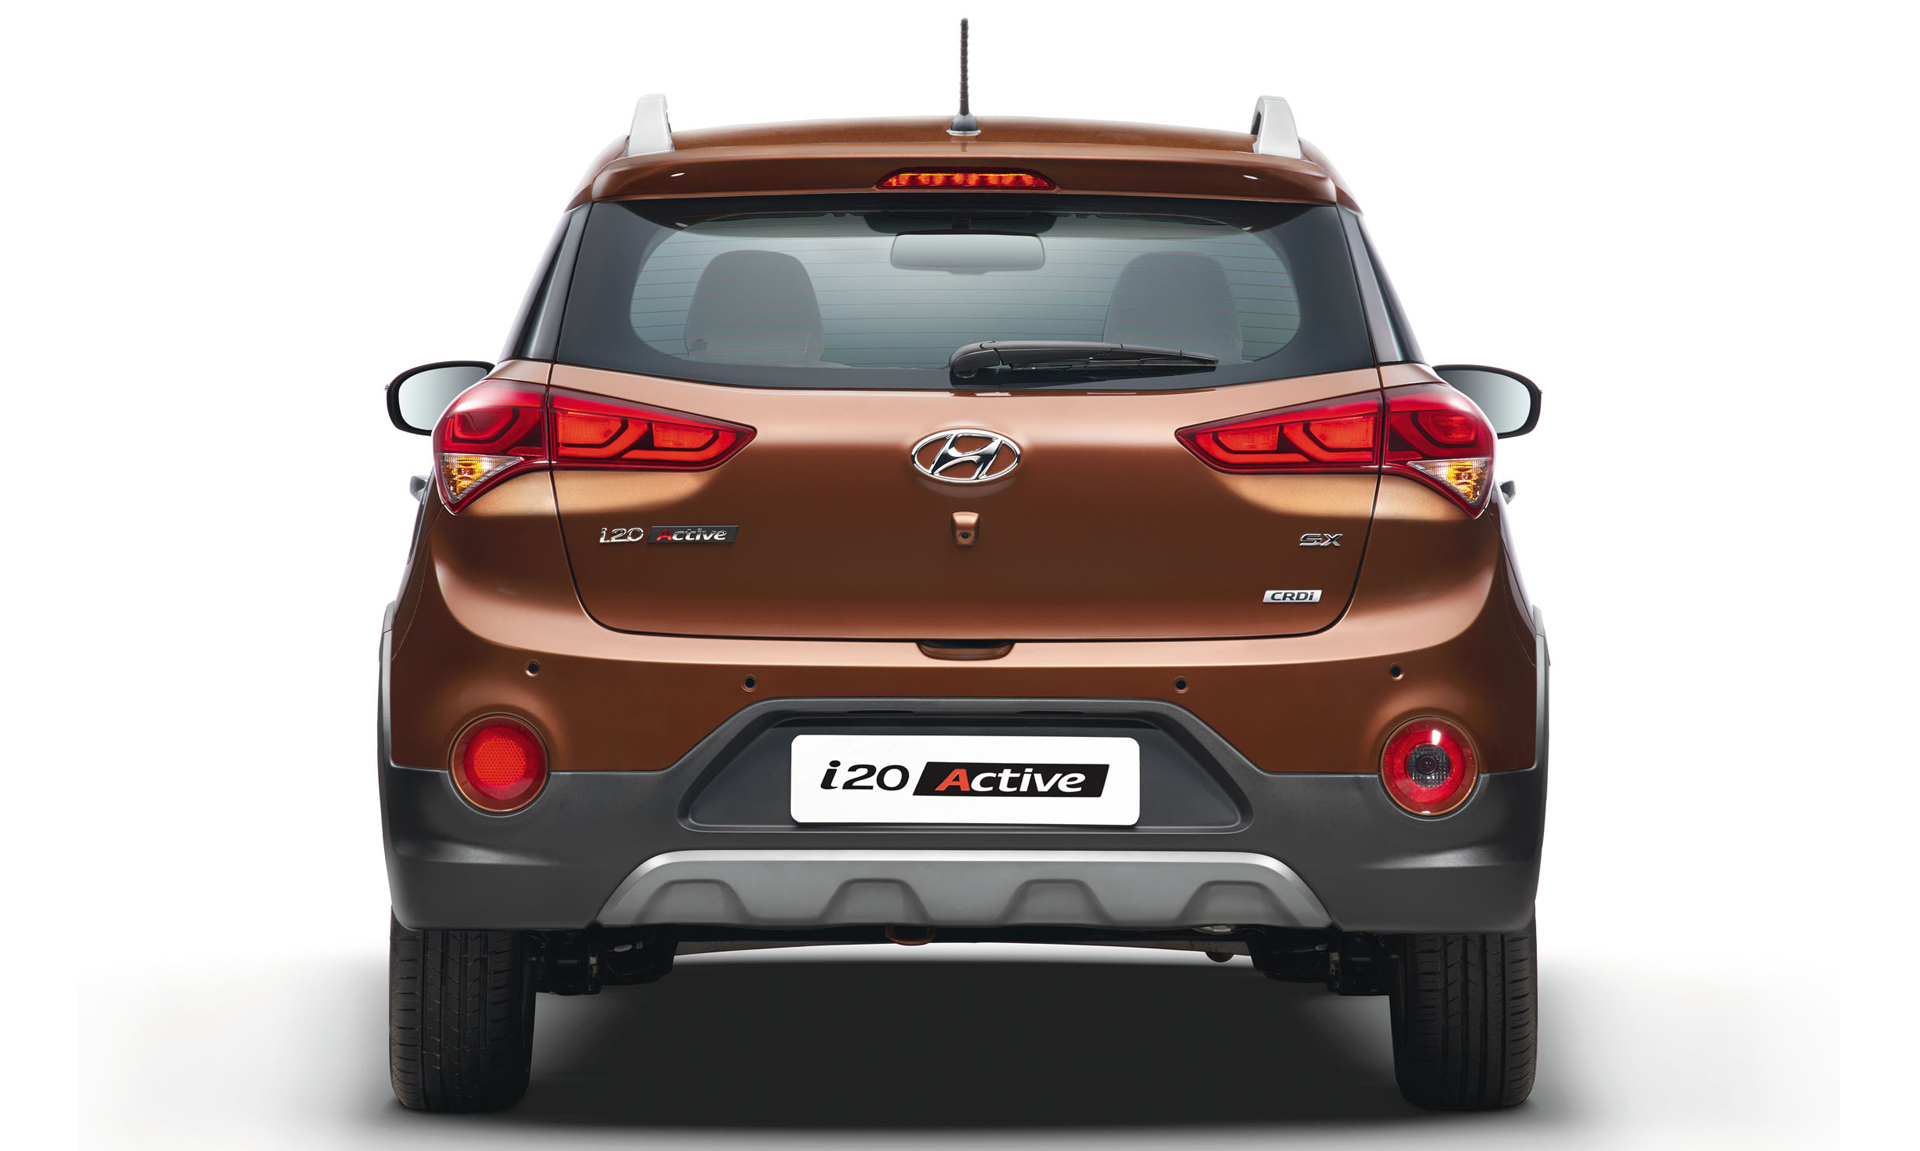 hyundai-i20-active-india-006 - bharathautos - automobile news updates